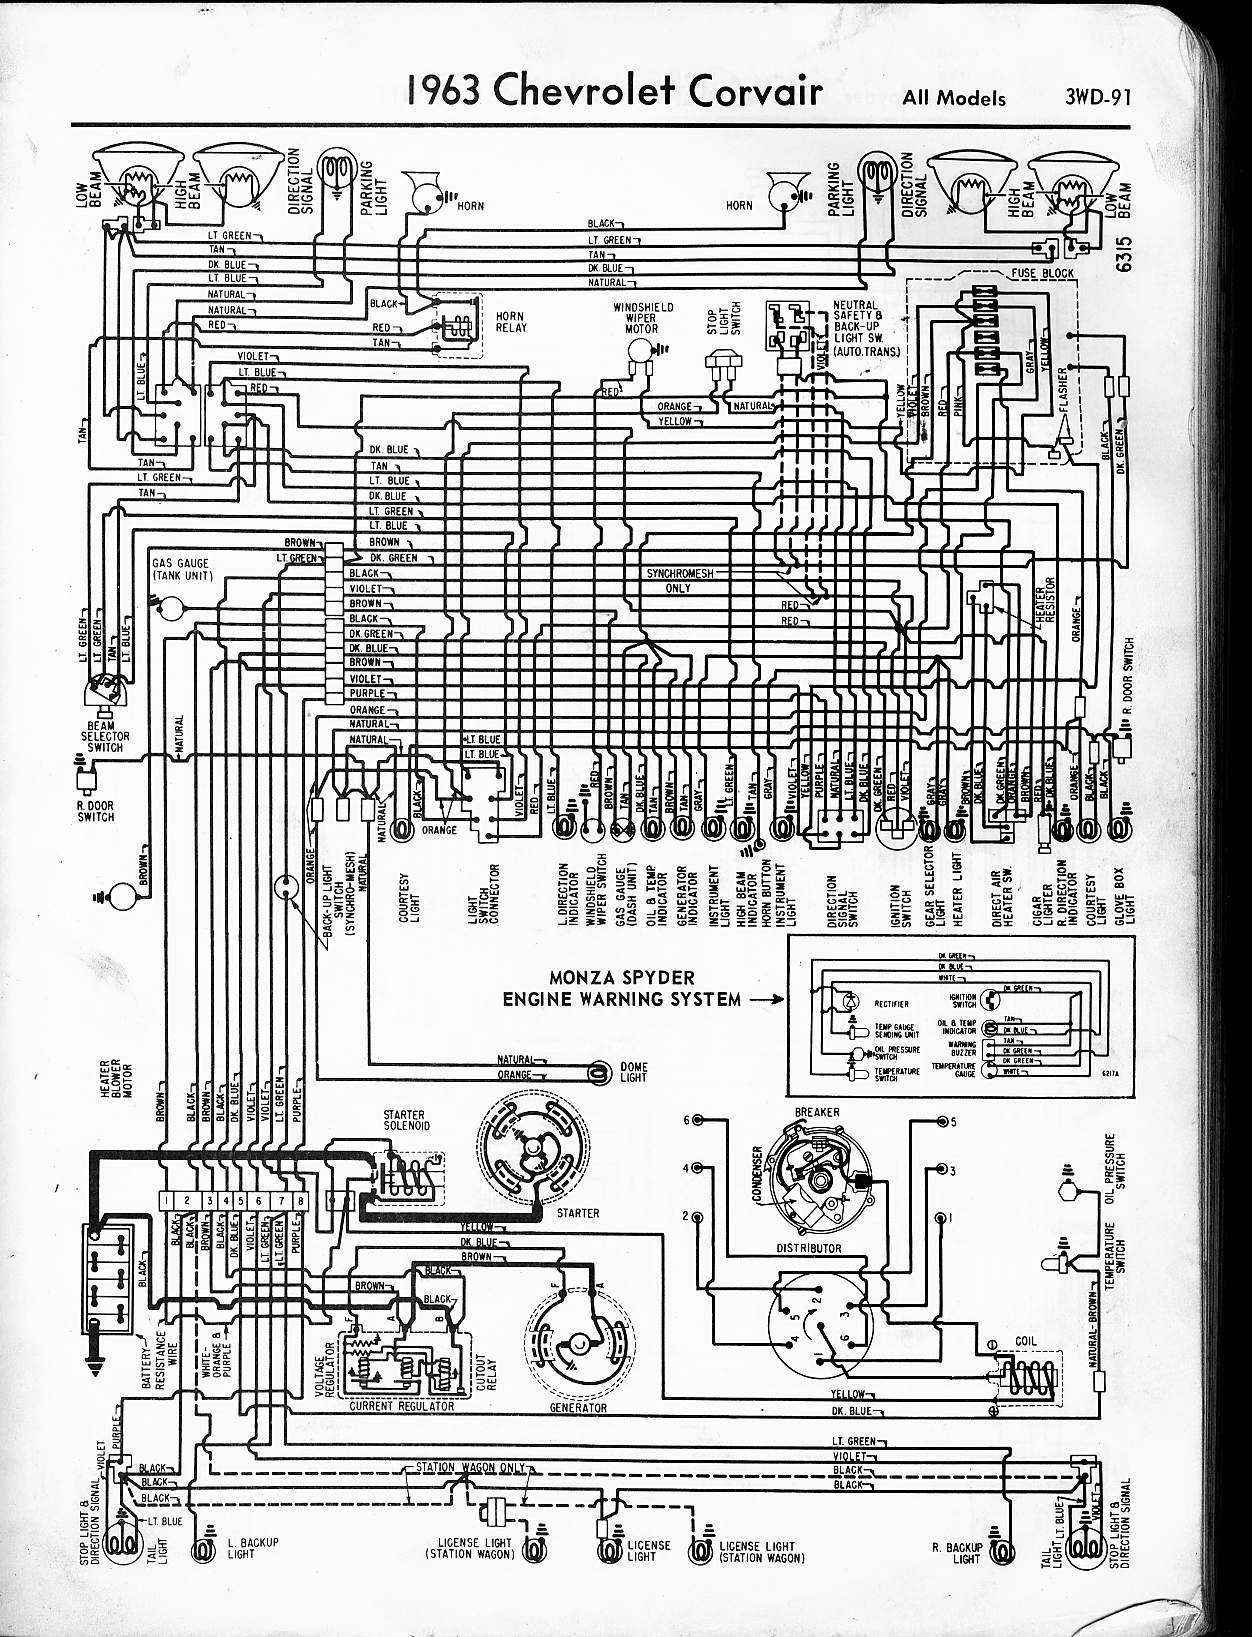 57 65 chevy wiring diagrams rh oldcarmanualproject com 01 Mustang Wiring Diagram 01 Mustang Wiring Diagram